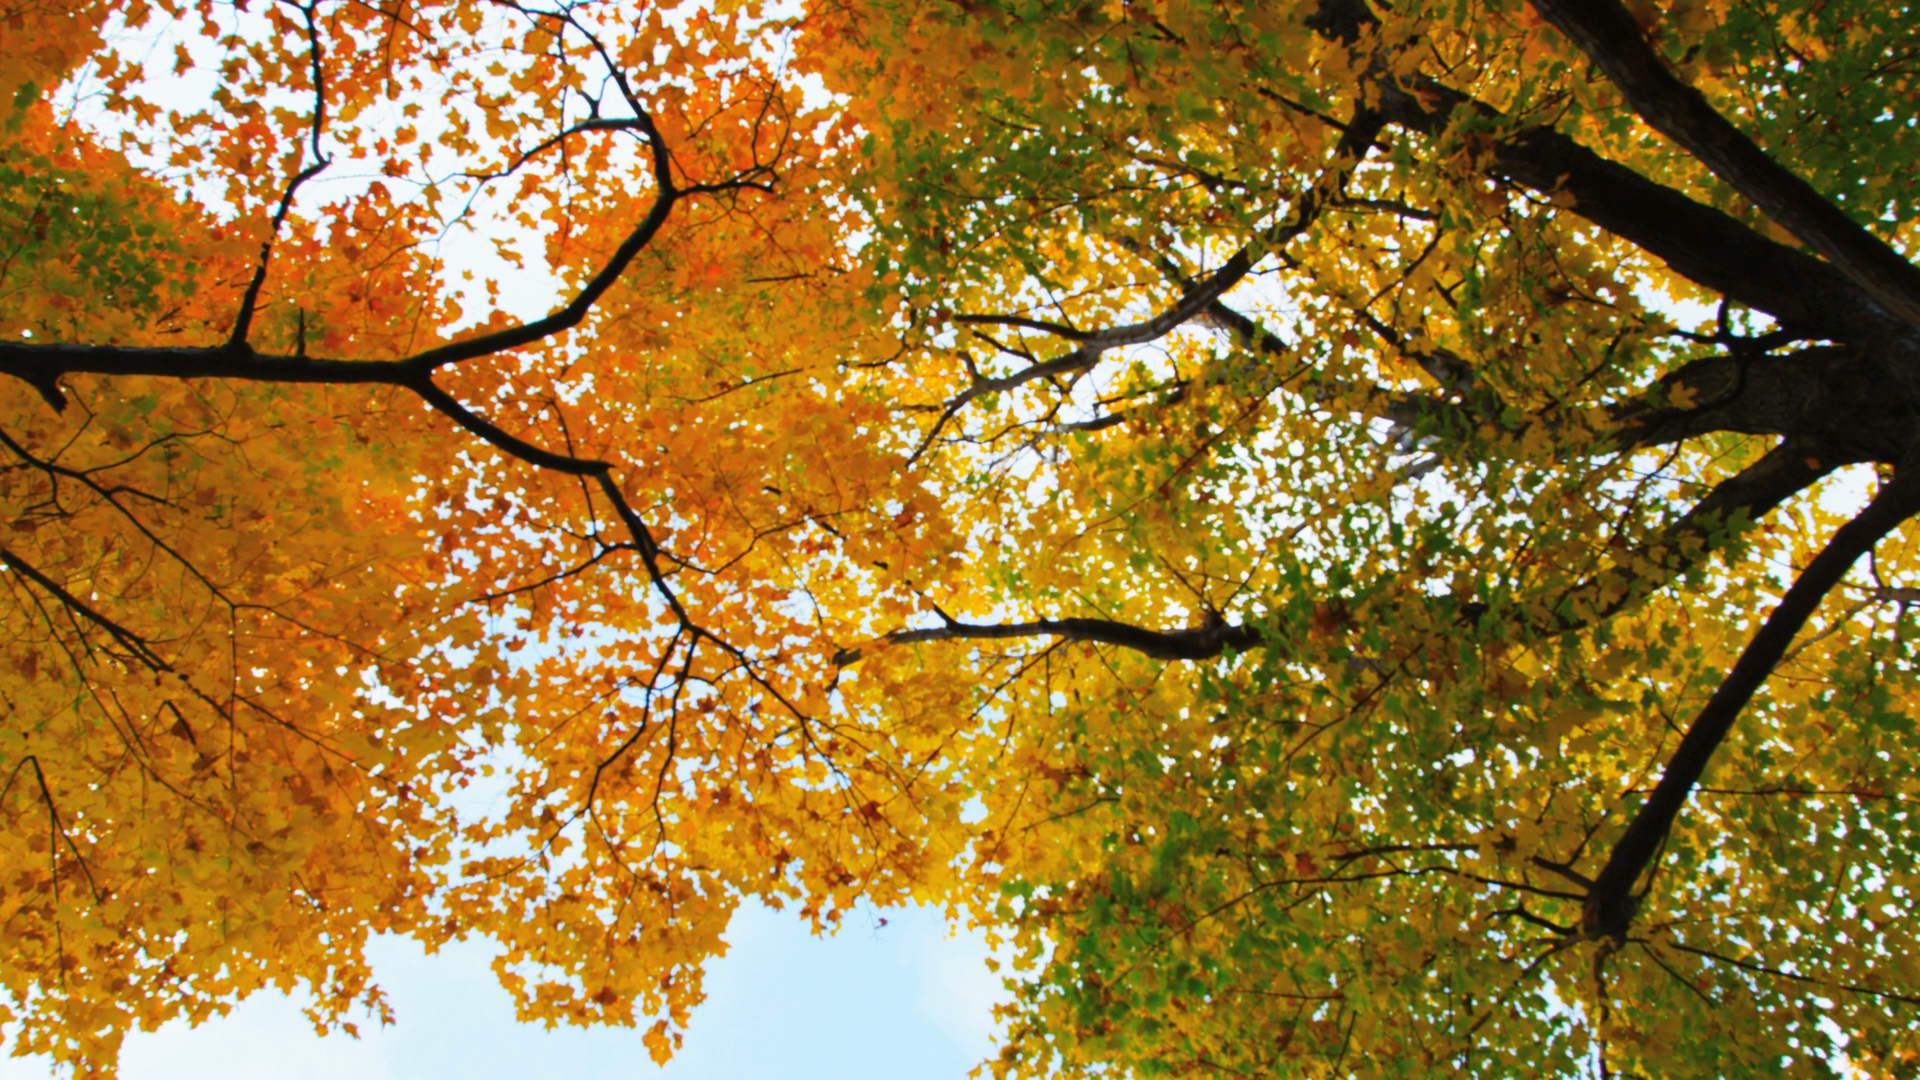 autumn-trees-view-from-below_bkyklizxh__D.mov.00_00_03_27.Still001.jpg